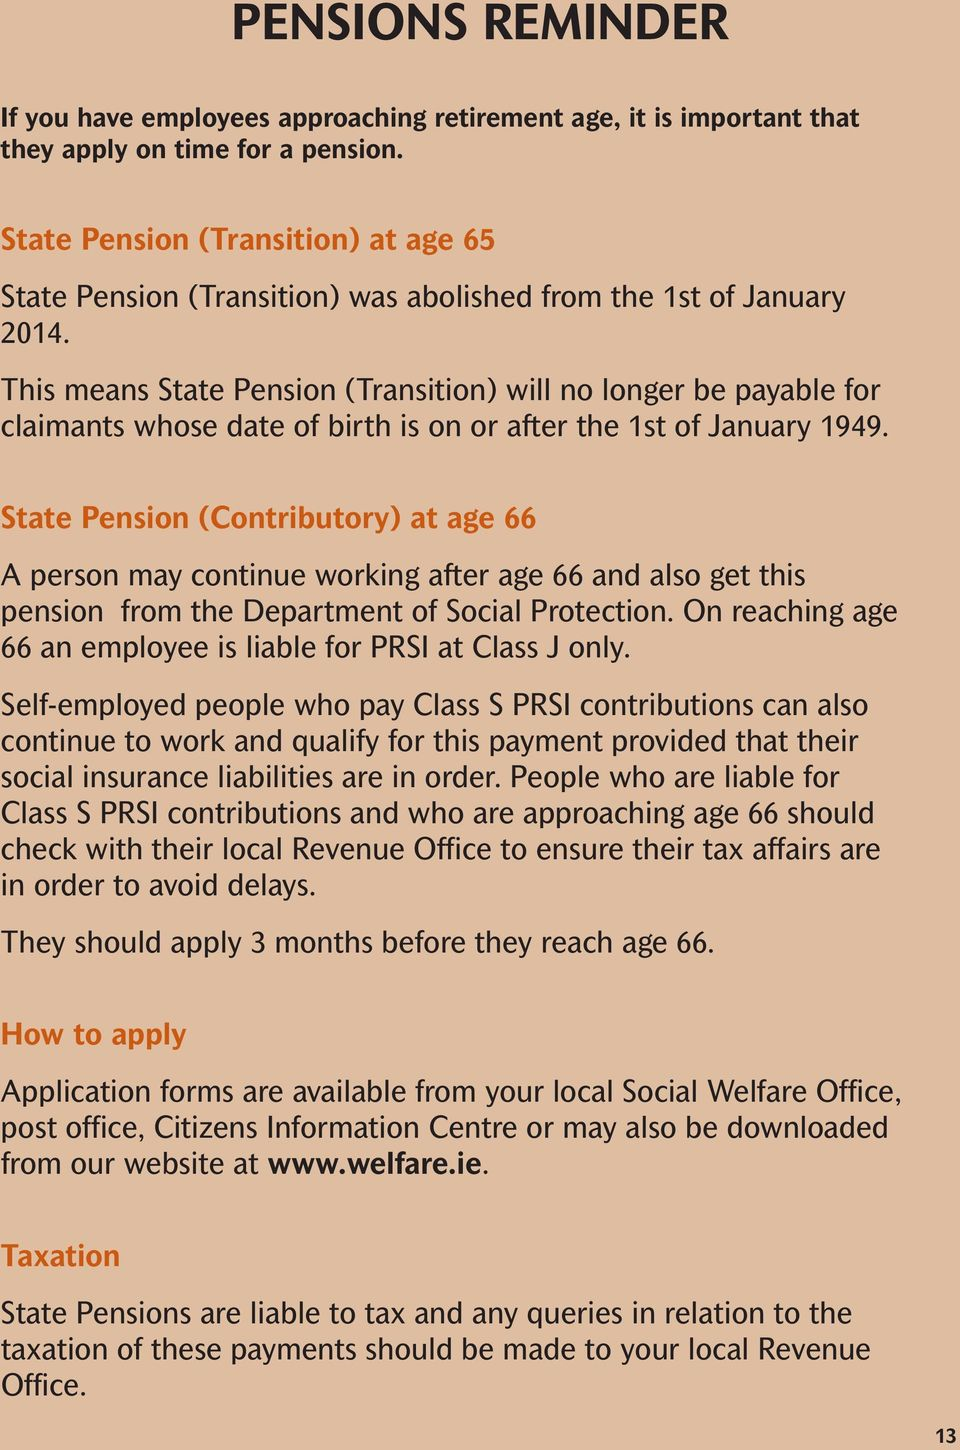 This means State Pension (Transition) will no longer be payable for claimants whose date of birth is on or after the 1st of January 1949.